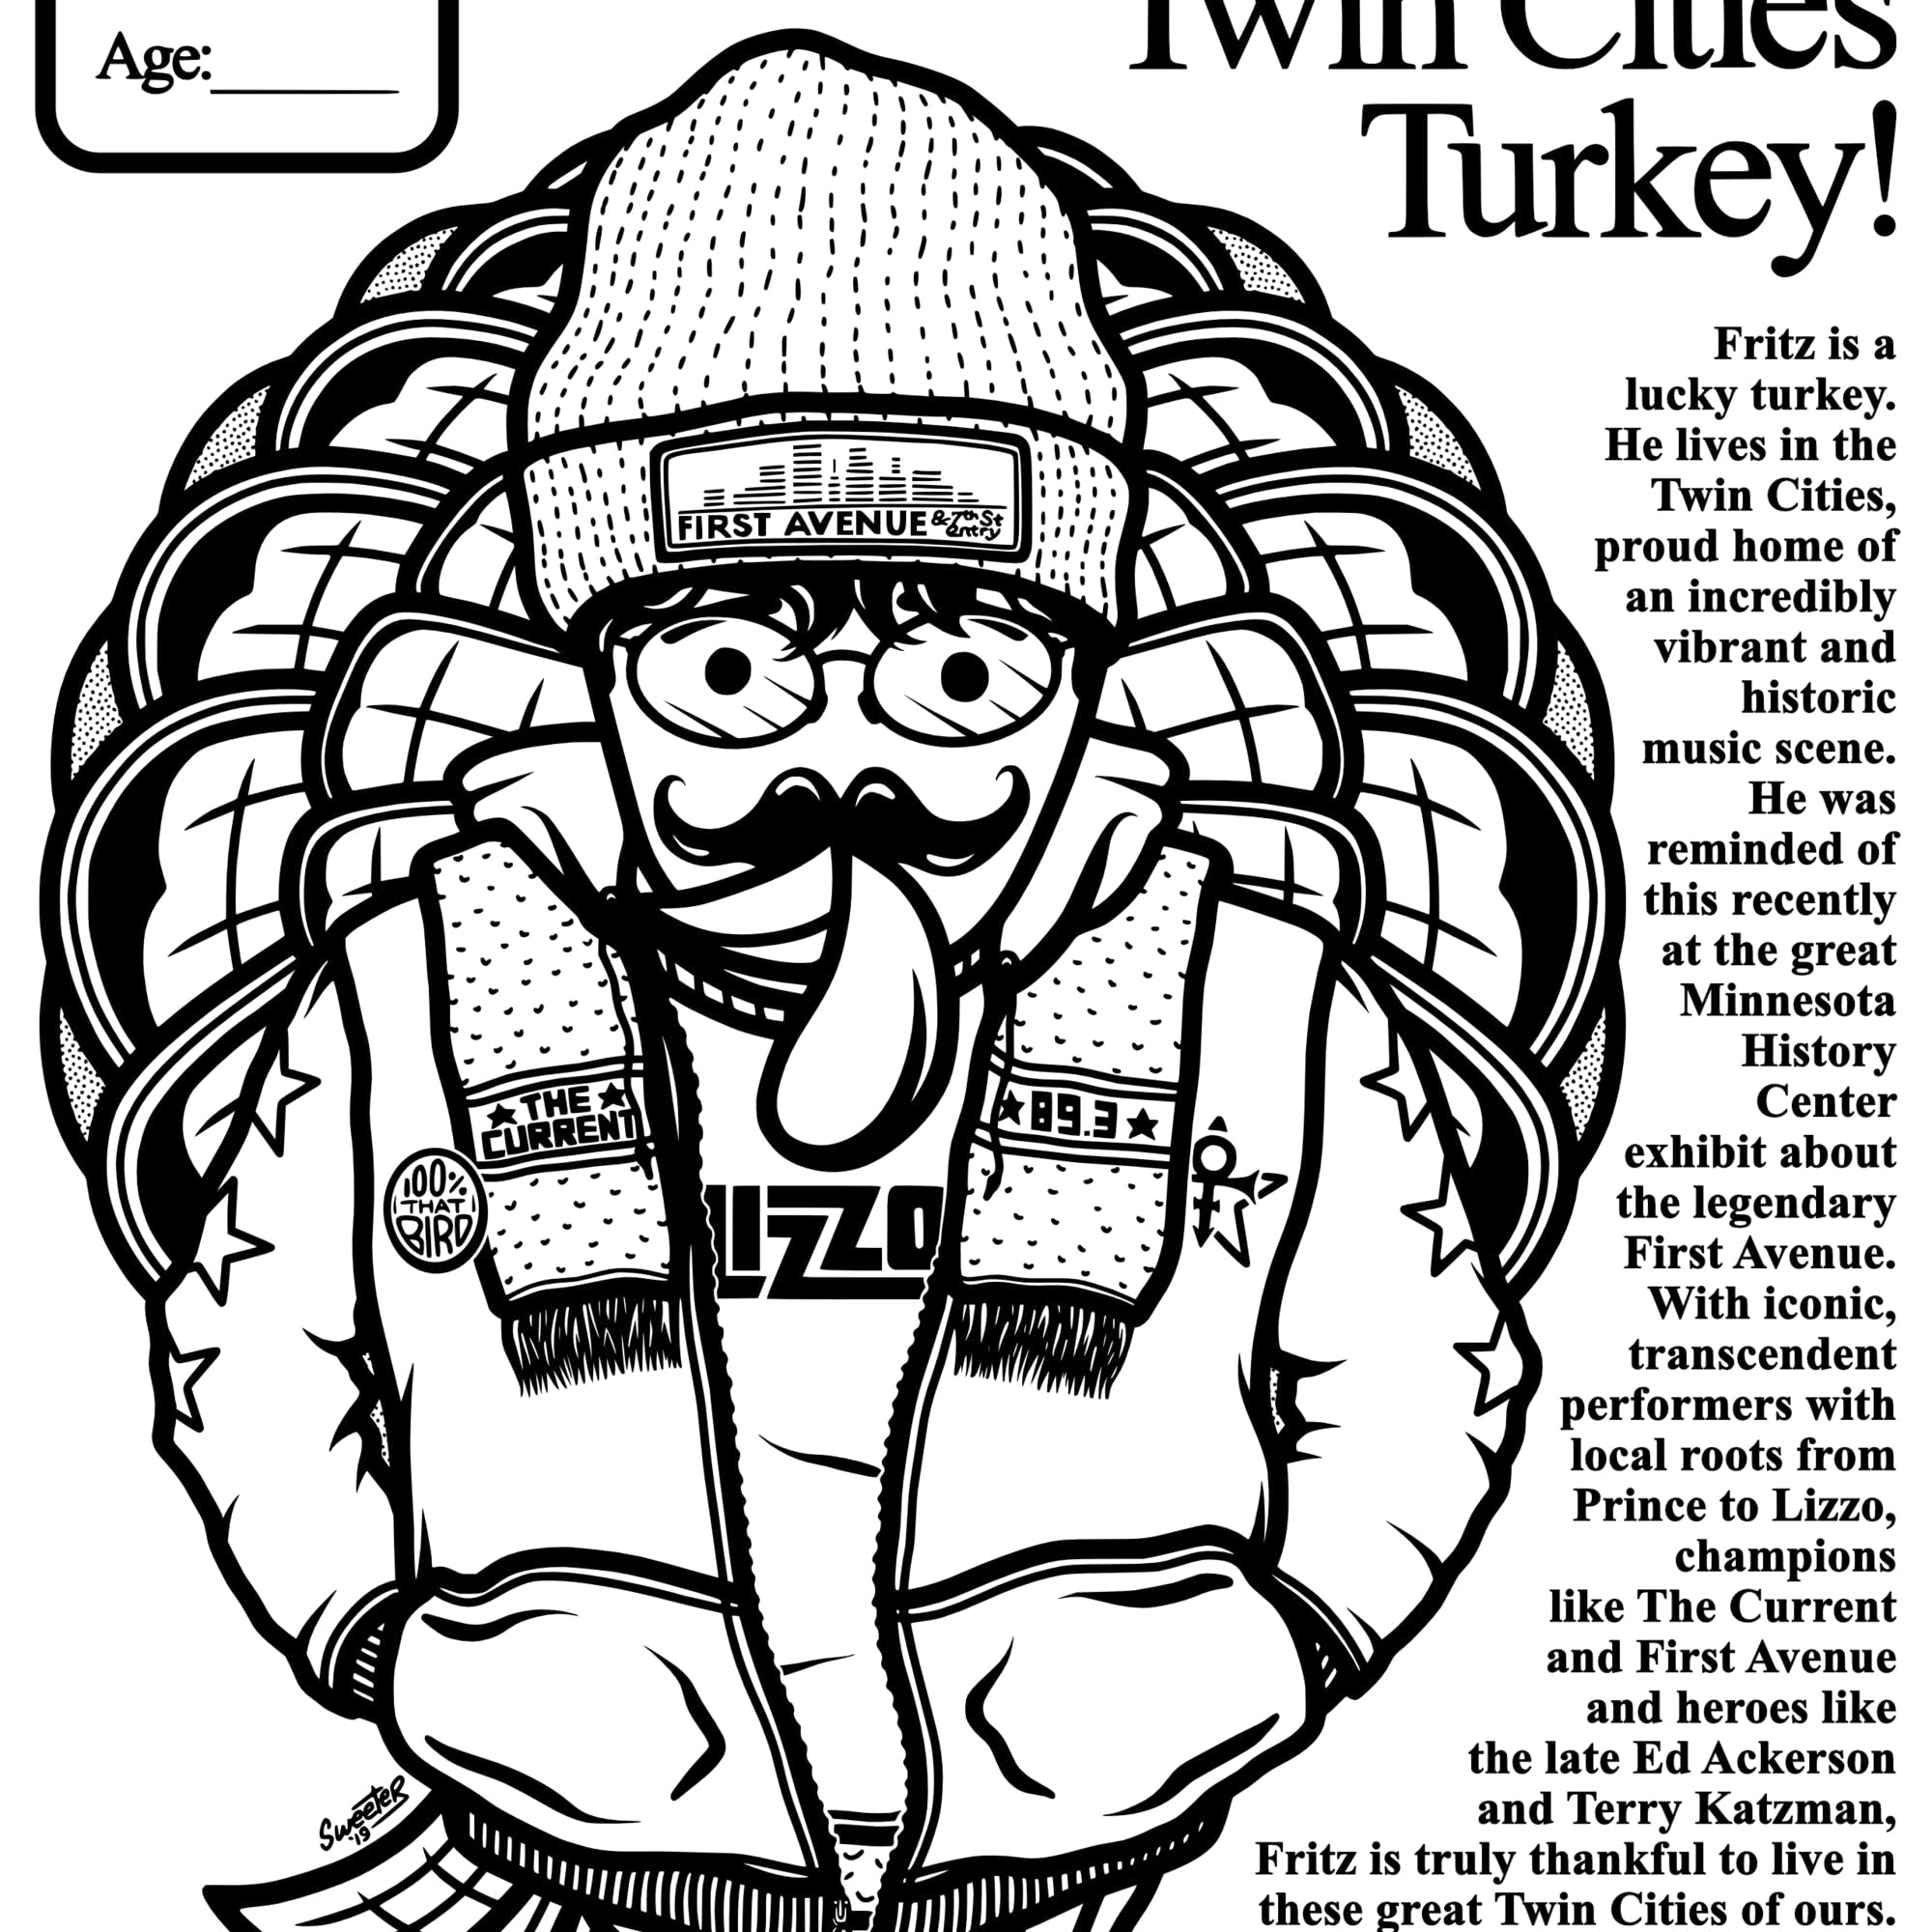 Oh You Twin Cities Turkey! Illustration coloring sheet